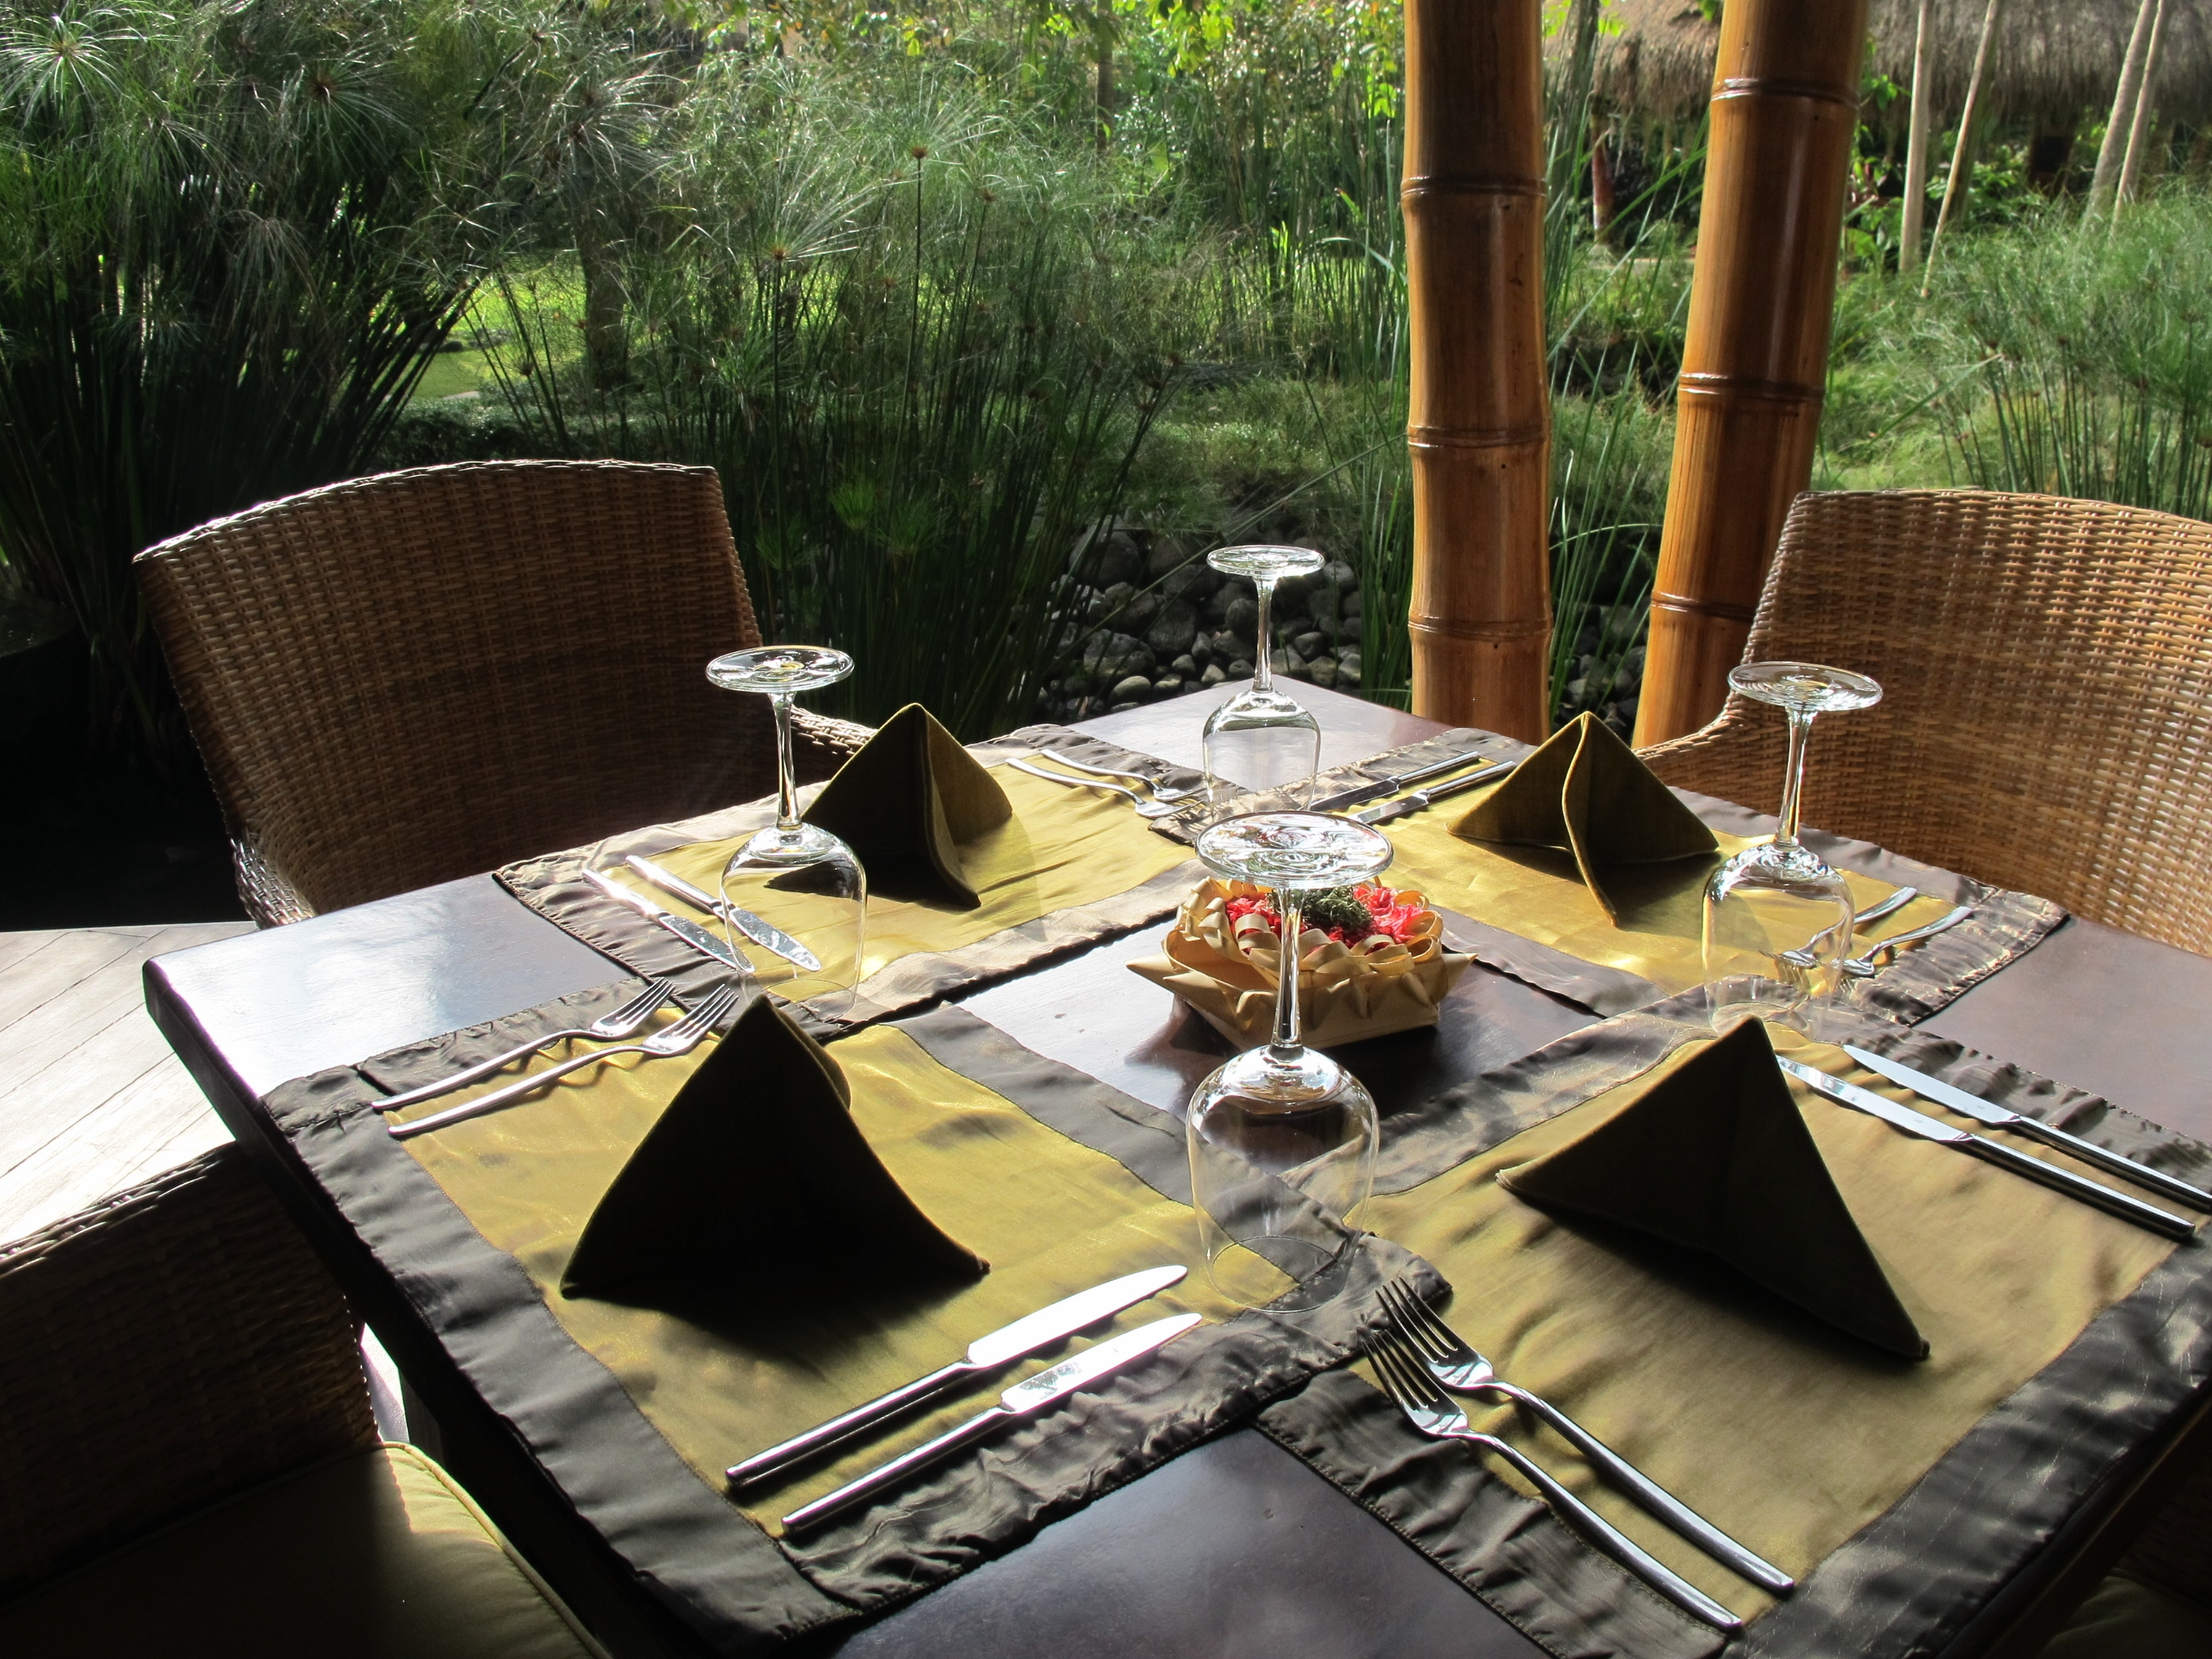 Vegan Restaurants in Ubud Bali part 2